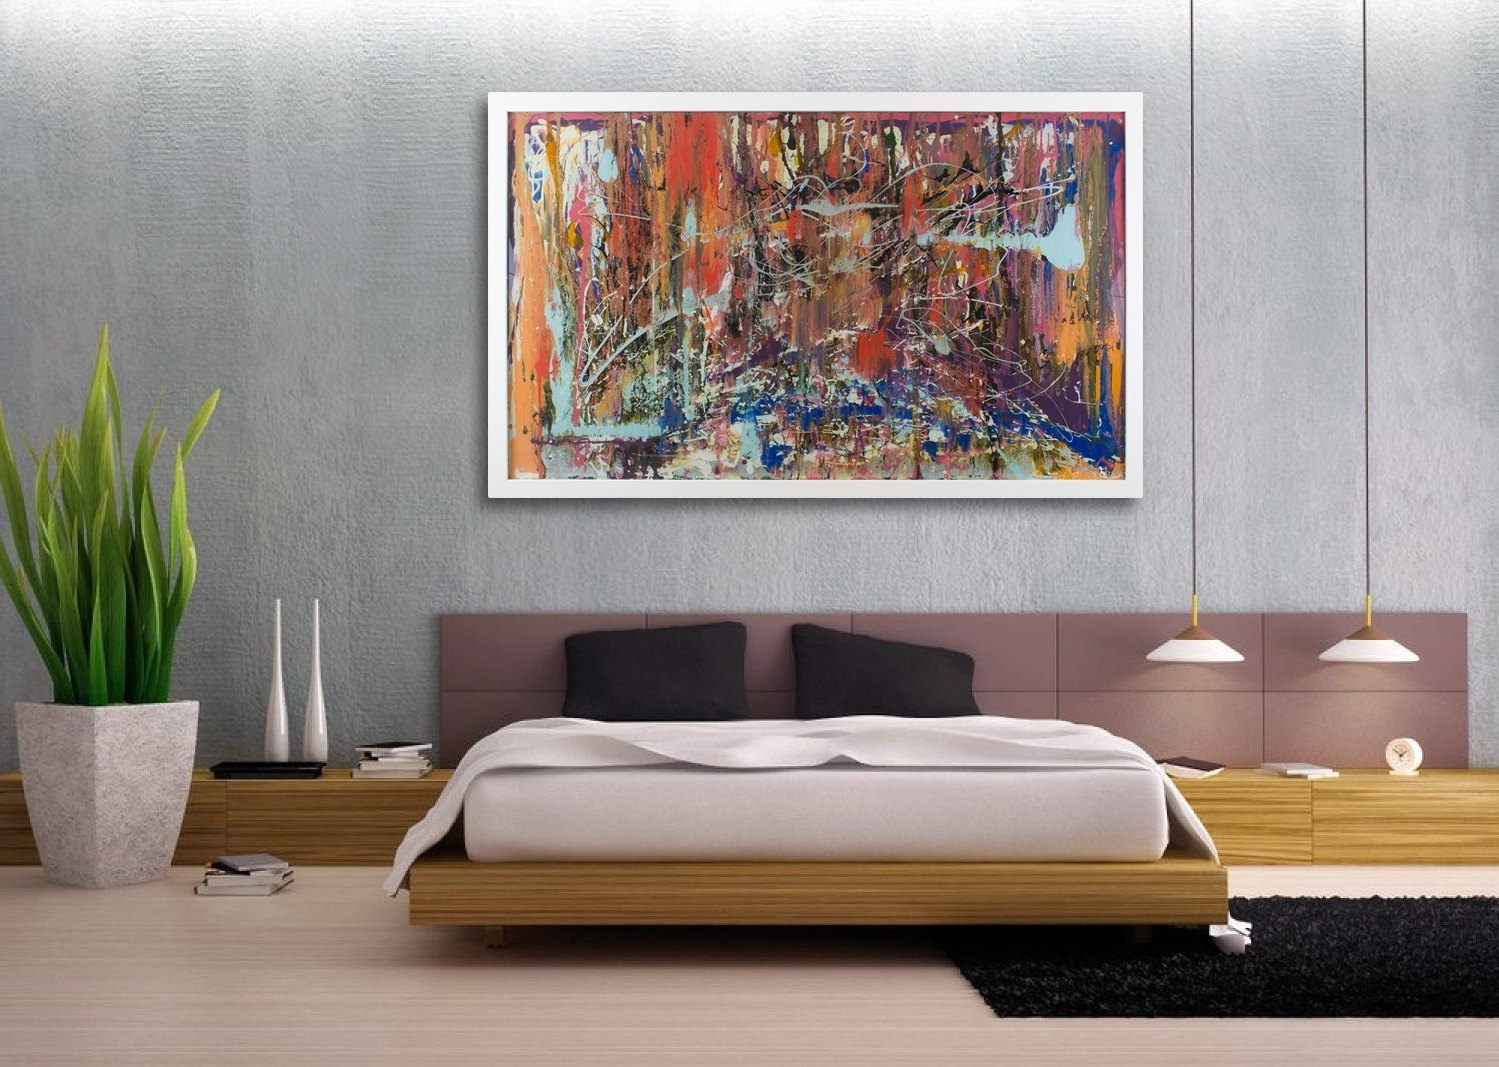 Incredible Wilmos Kovacs Abstract Painting On Metal Sculpture Within Most Current Large Abstract Wall Art (View 3 of 20)